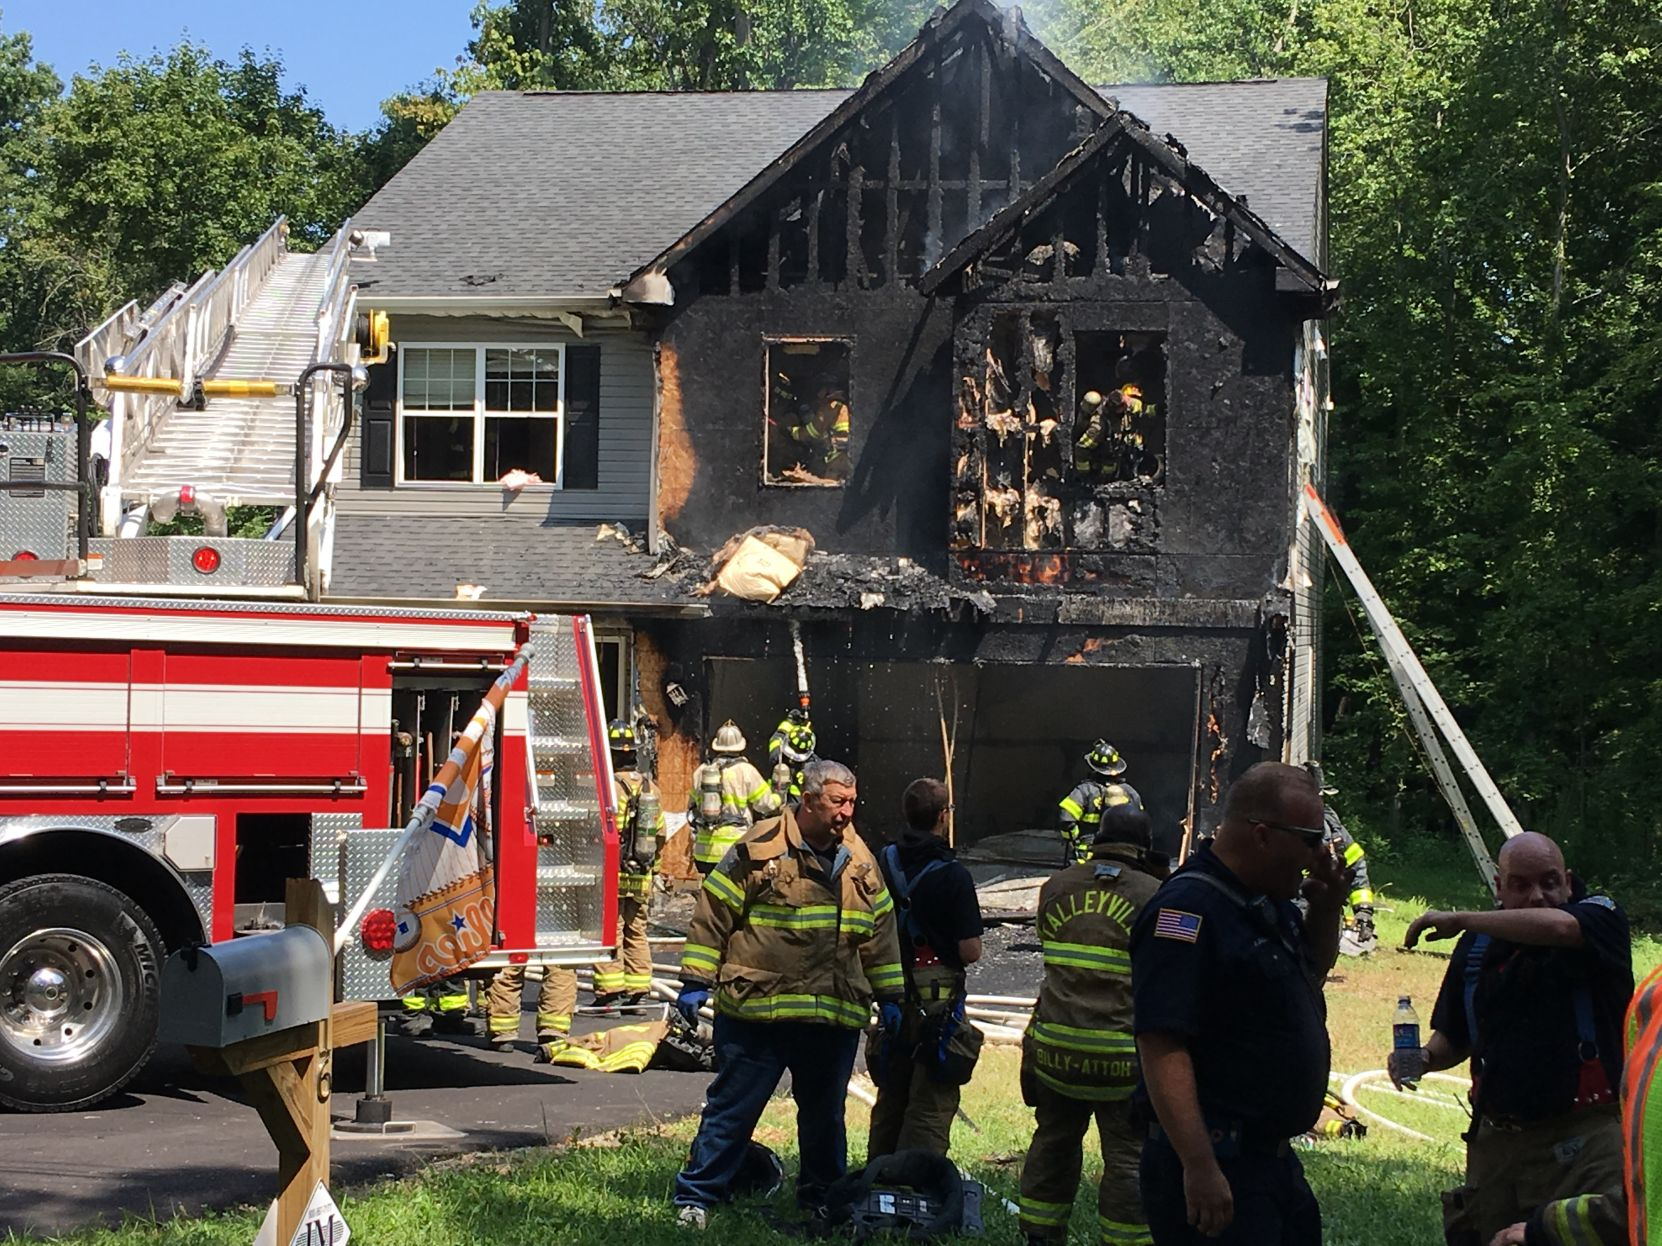 Seemly Fire Heavily Damages Claymont House Fire Heavily Damages Claymont House Latest From Wdel News John Schnatter House Nj John Schnatter House Tour curbed John Schnatter House